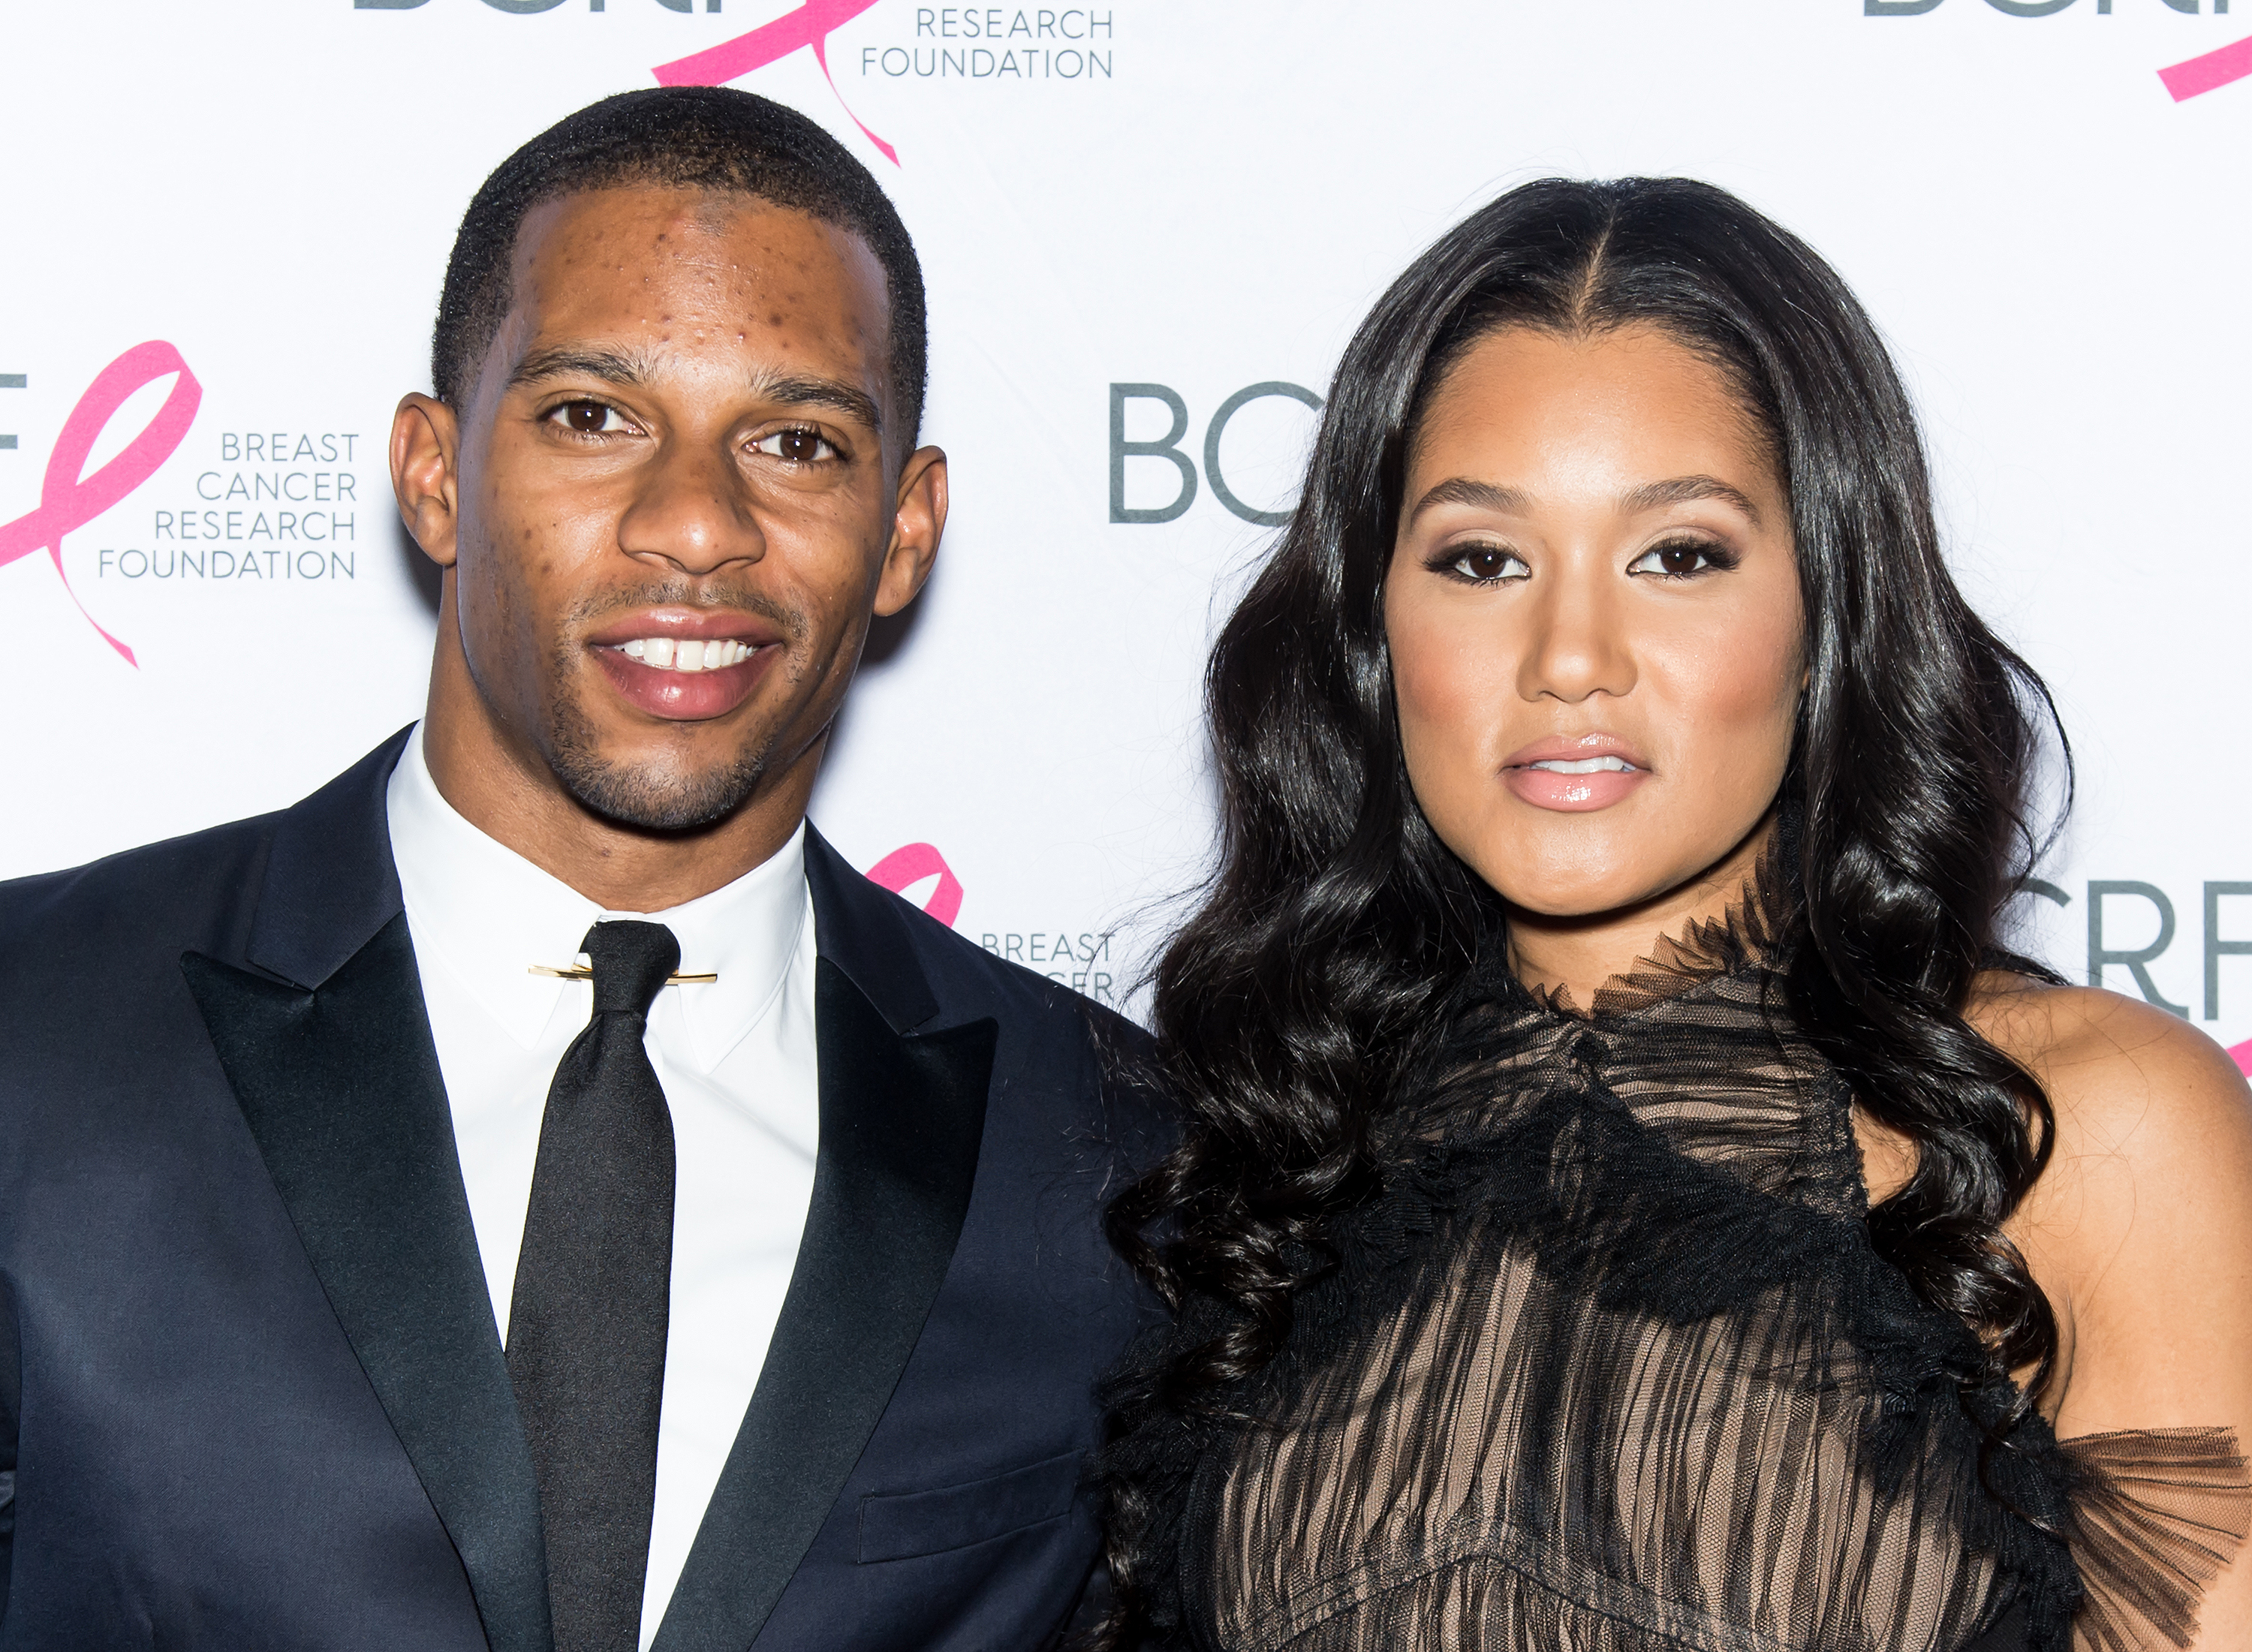 The Breast Cancer Research Foundation 2015 Pink Carpet Party